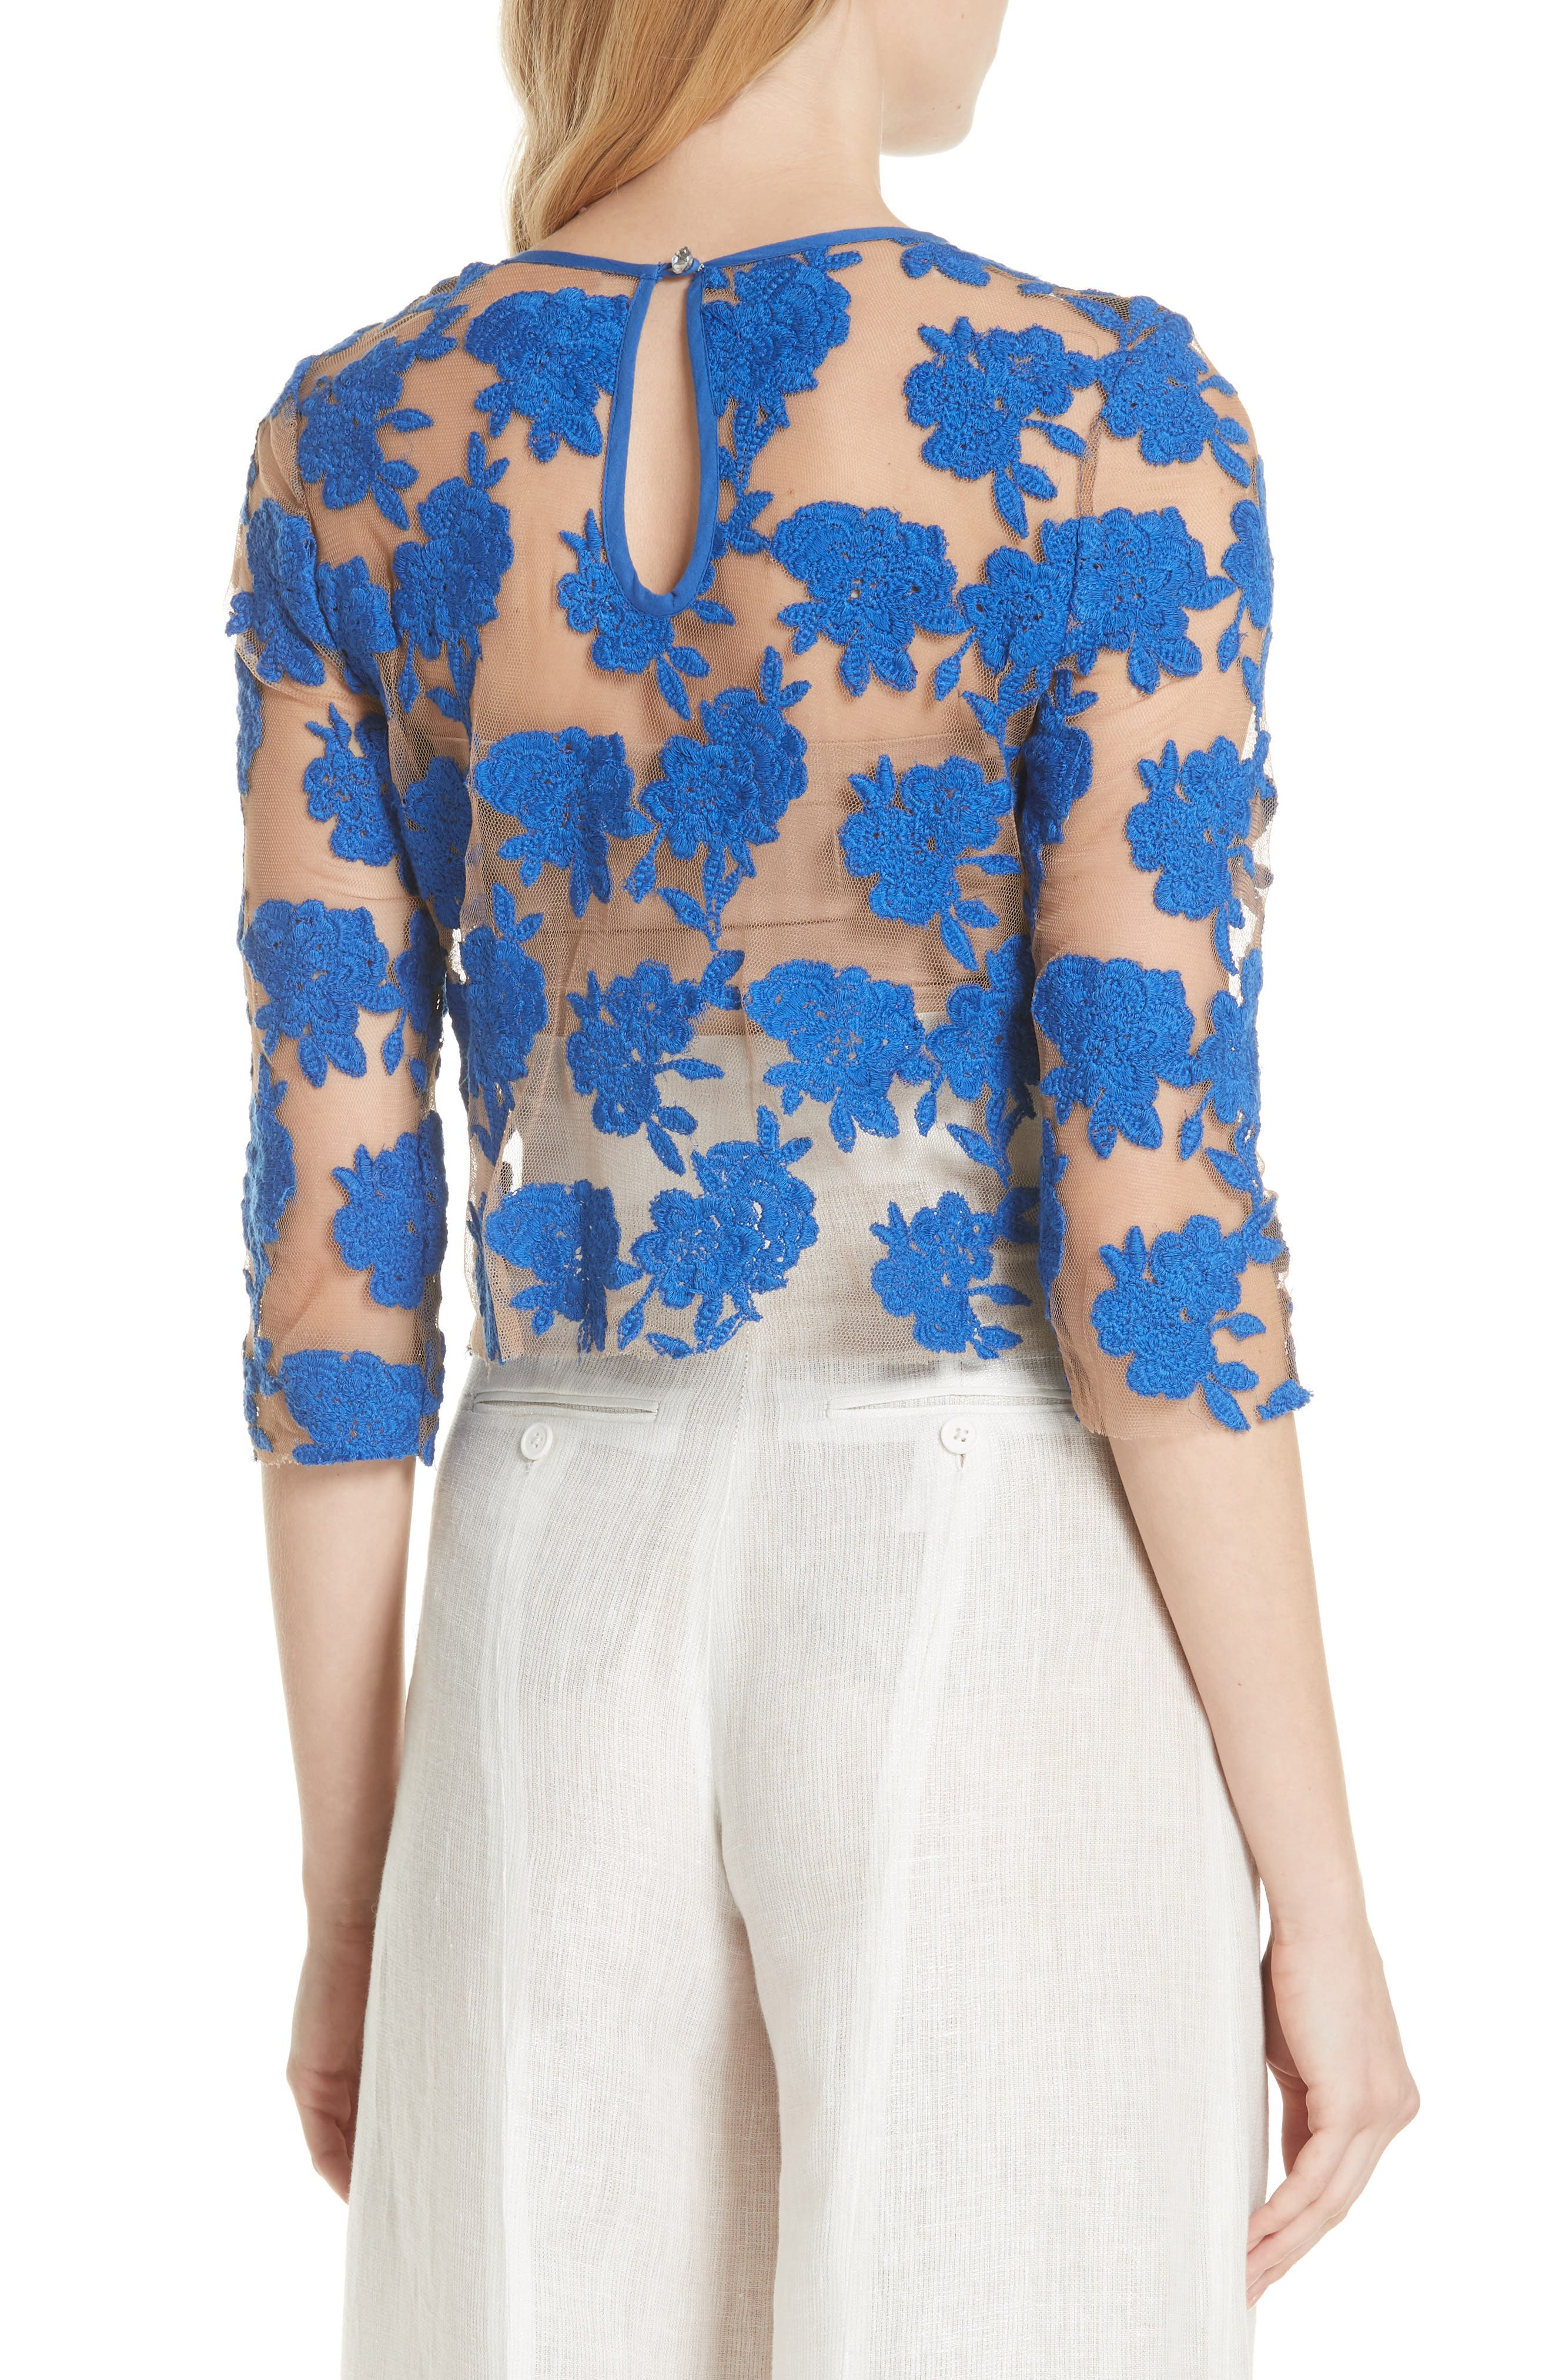 Sheer Embroidered Floral Top,                             Alternate thumbnail 2, color,                             Blue Pigment